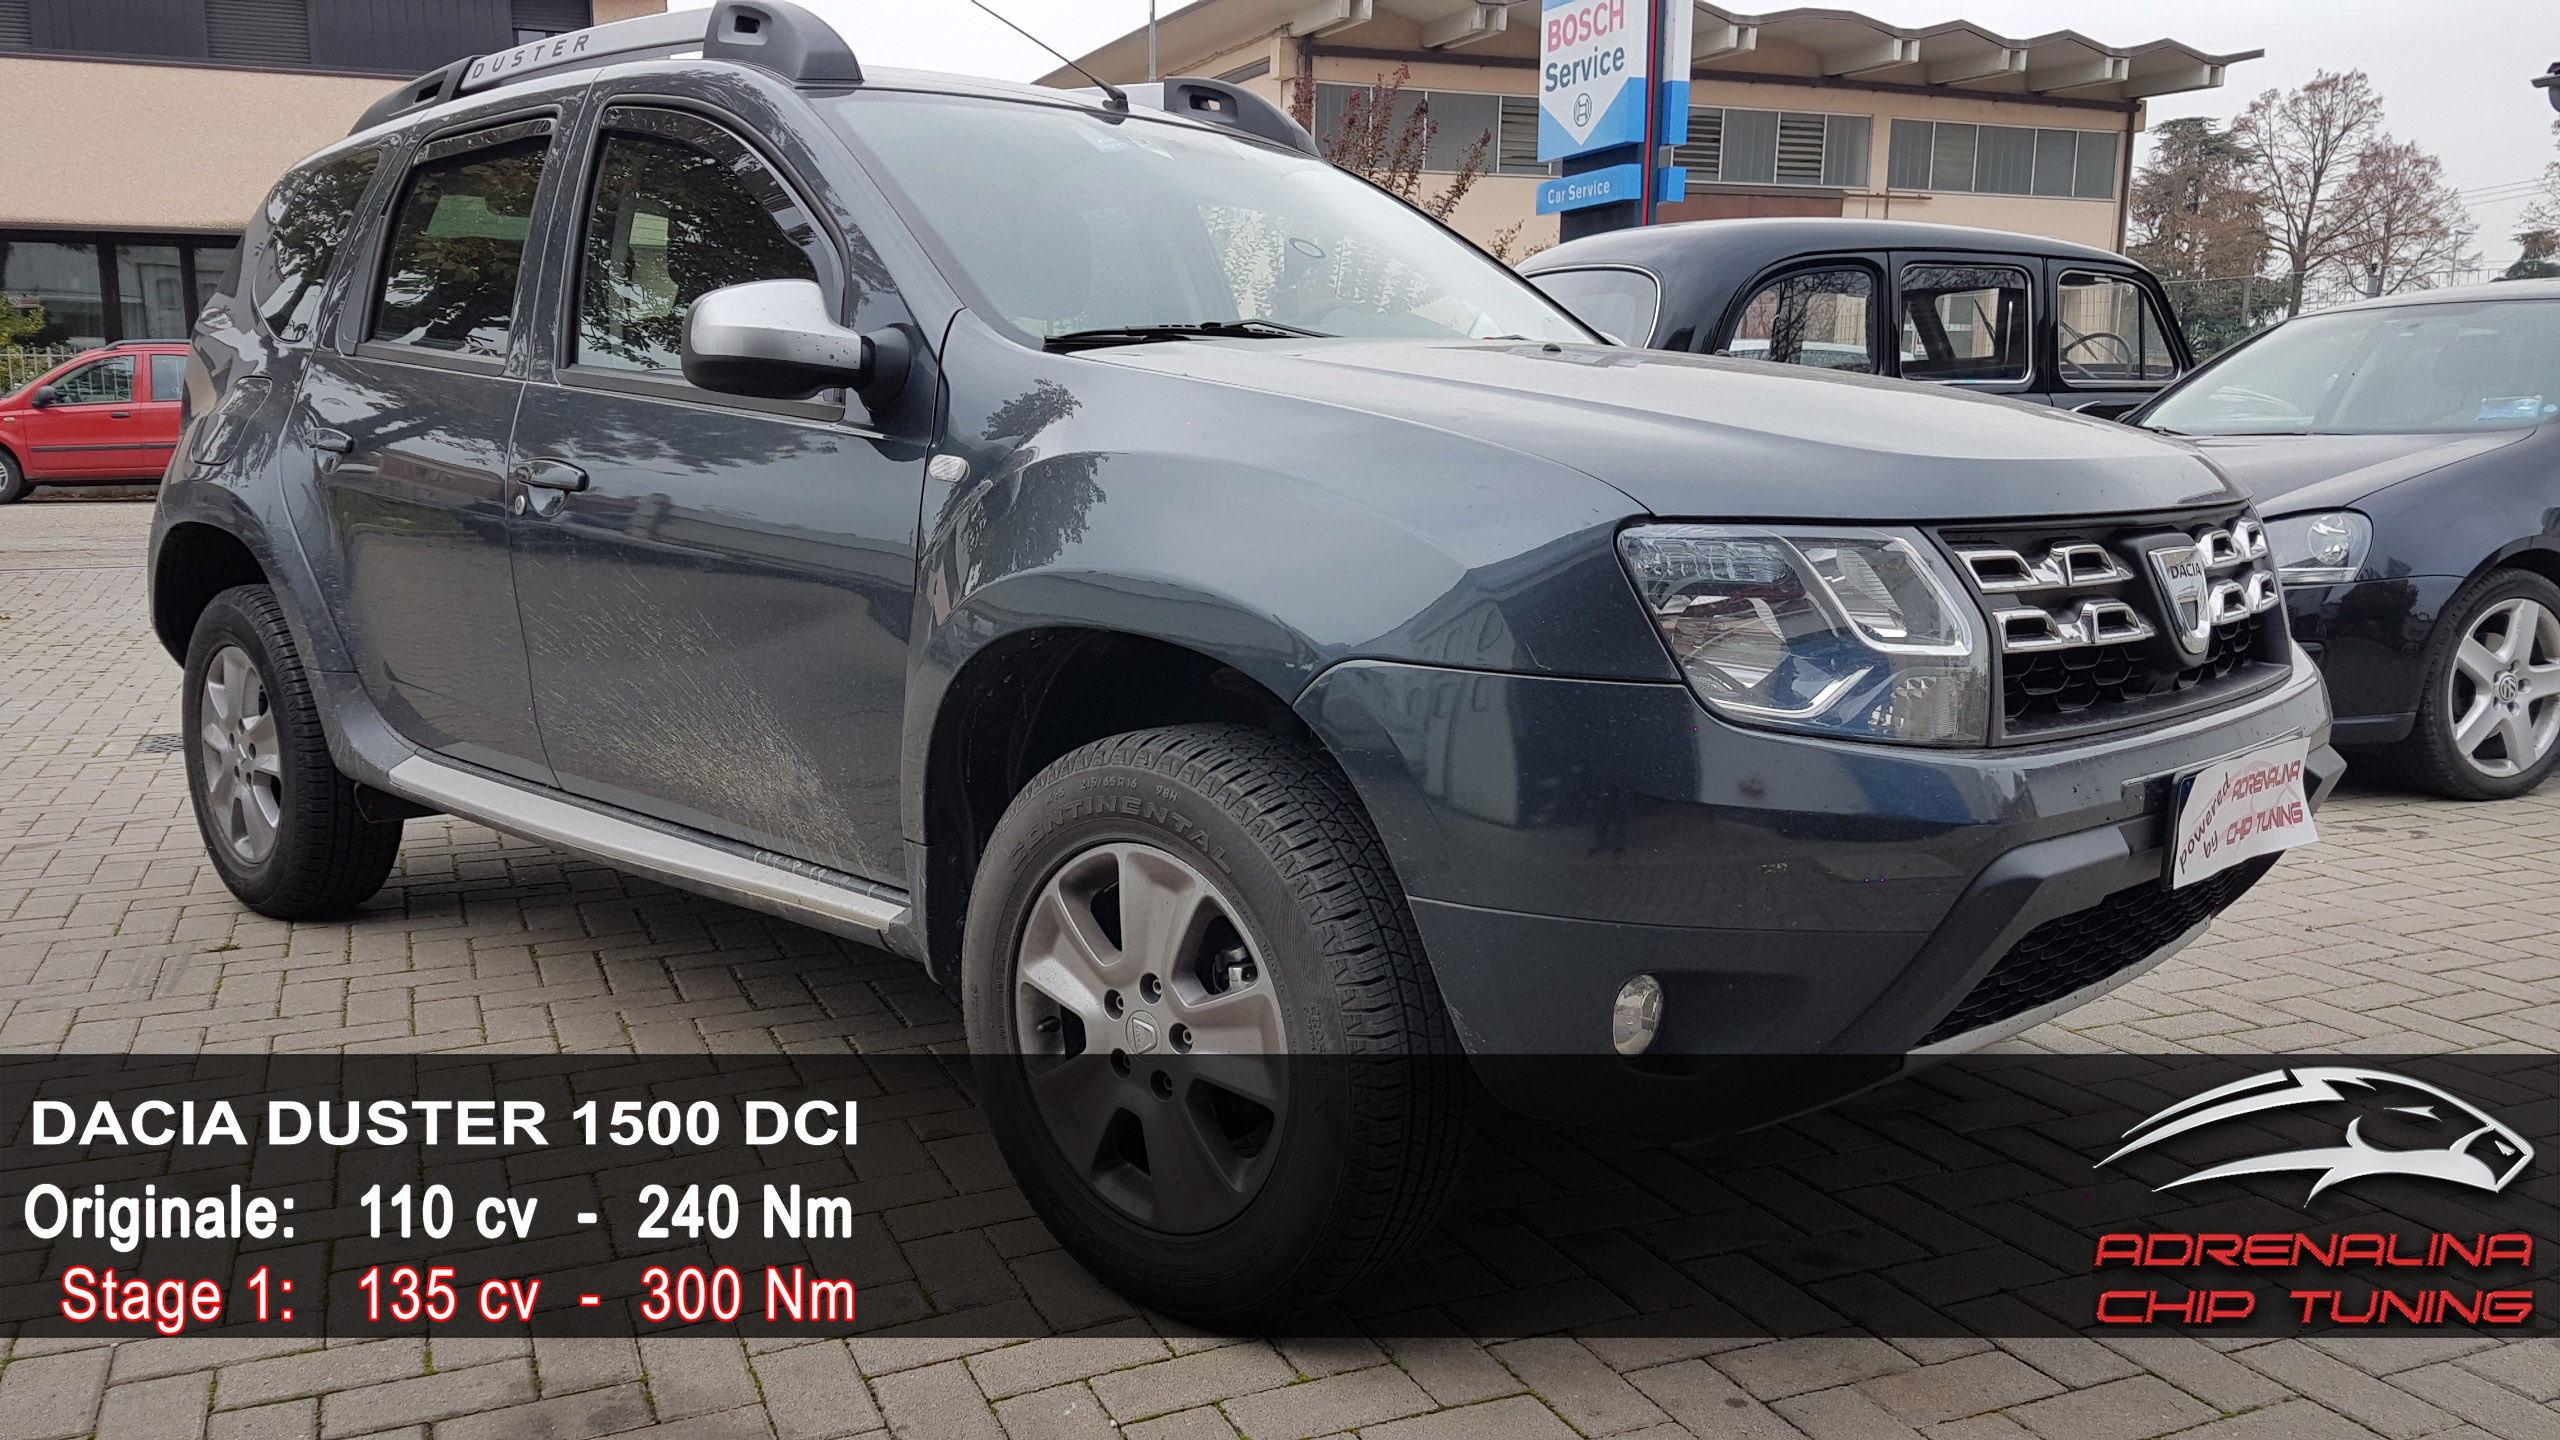 dacia duster 1500 dci adrenalina chip tuning. Black Bedroom Furniture Sets. Home Design Ideas